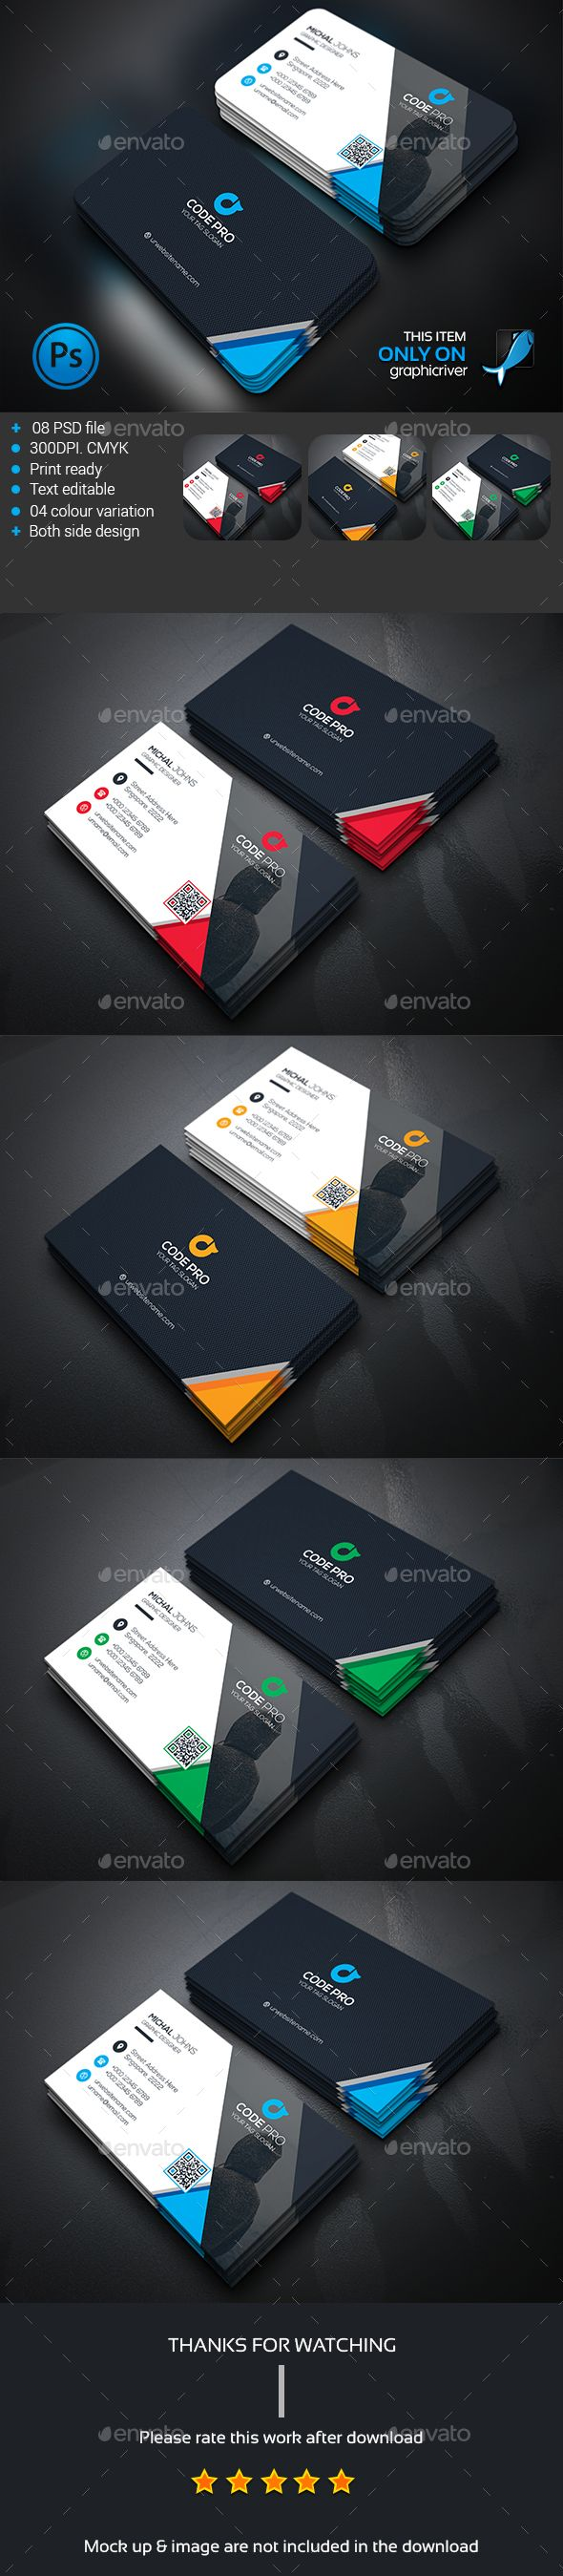 Business Card  — PSD Template #all #black • Download ➝ https://graphicriver.net/item/business-card/14265633?ref=pxcr